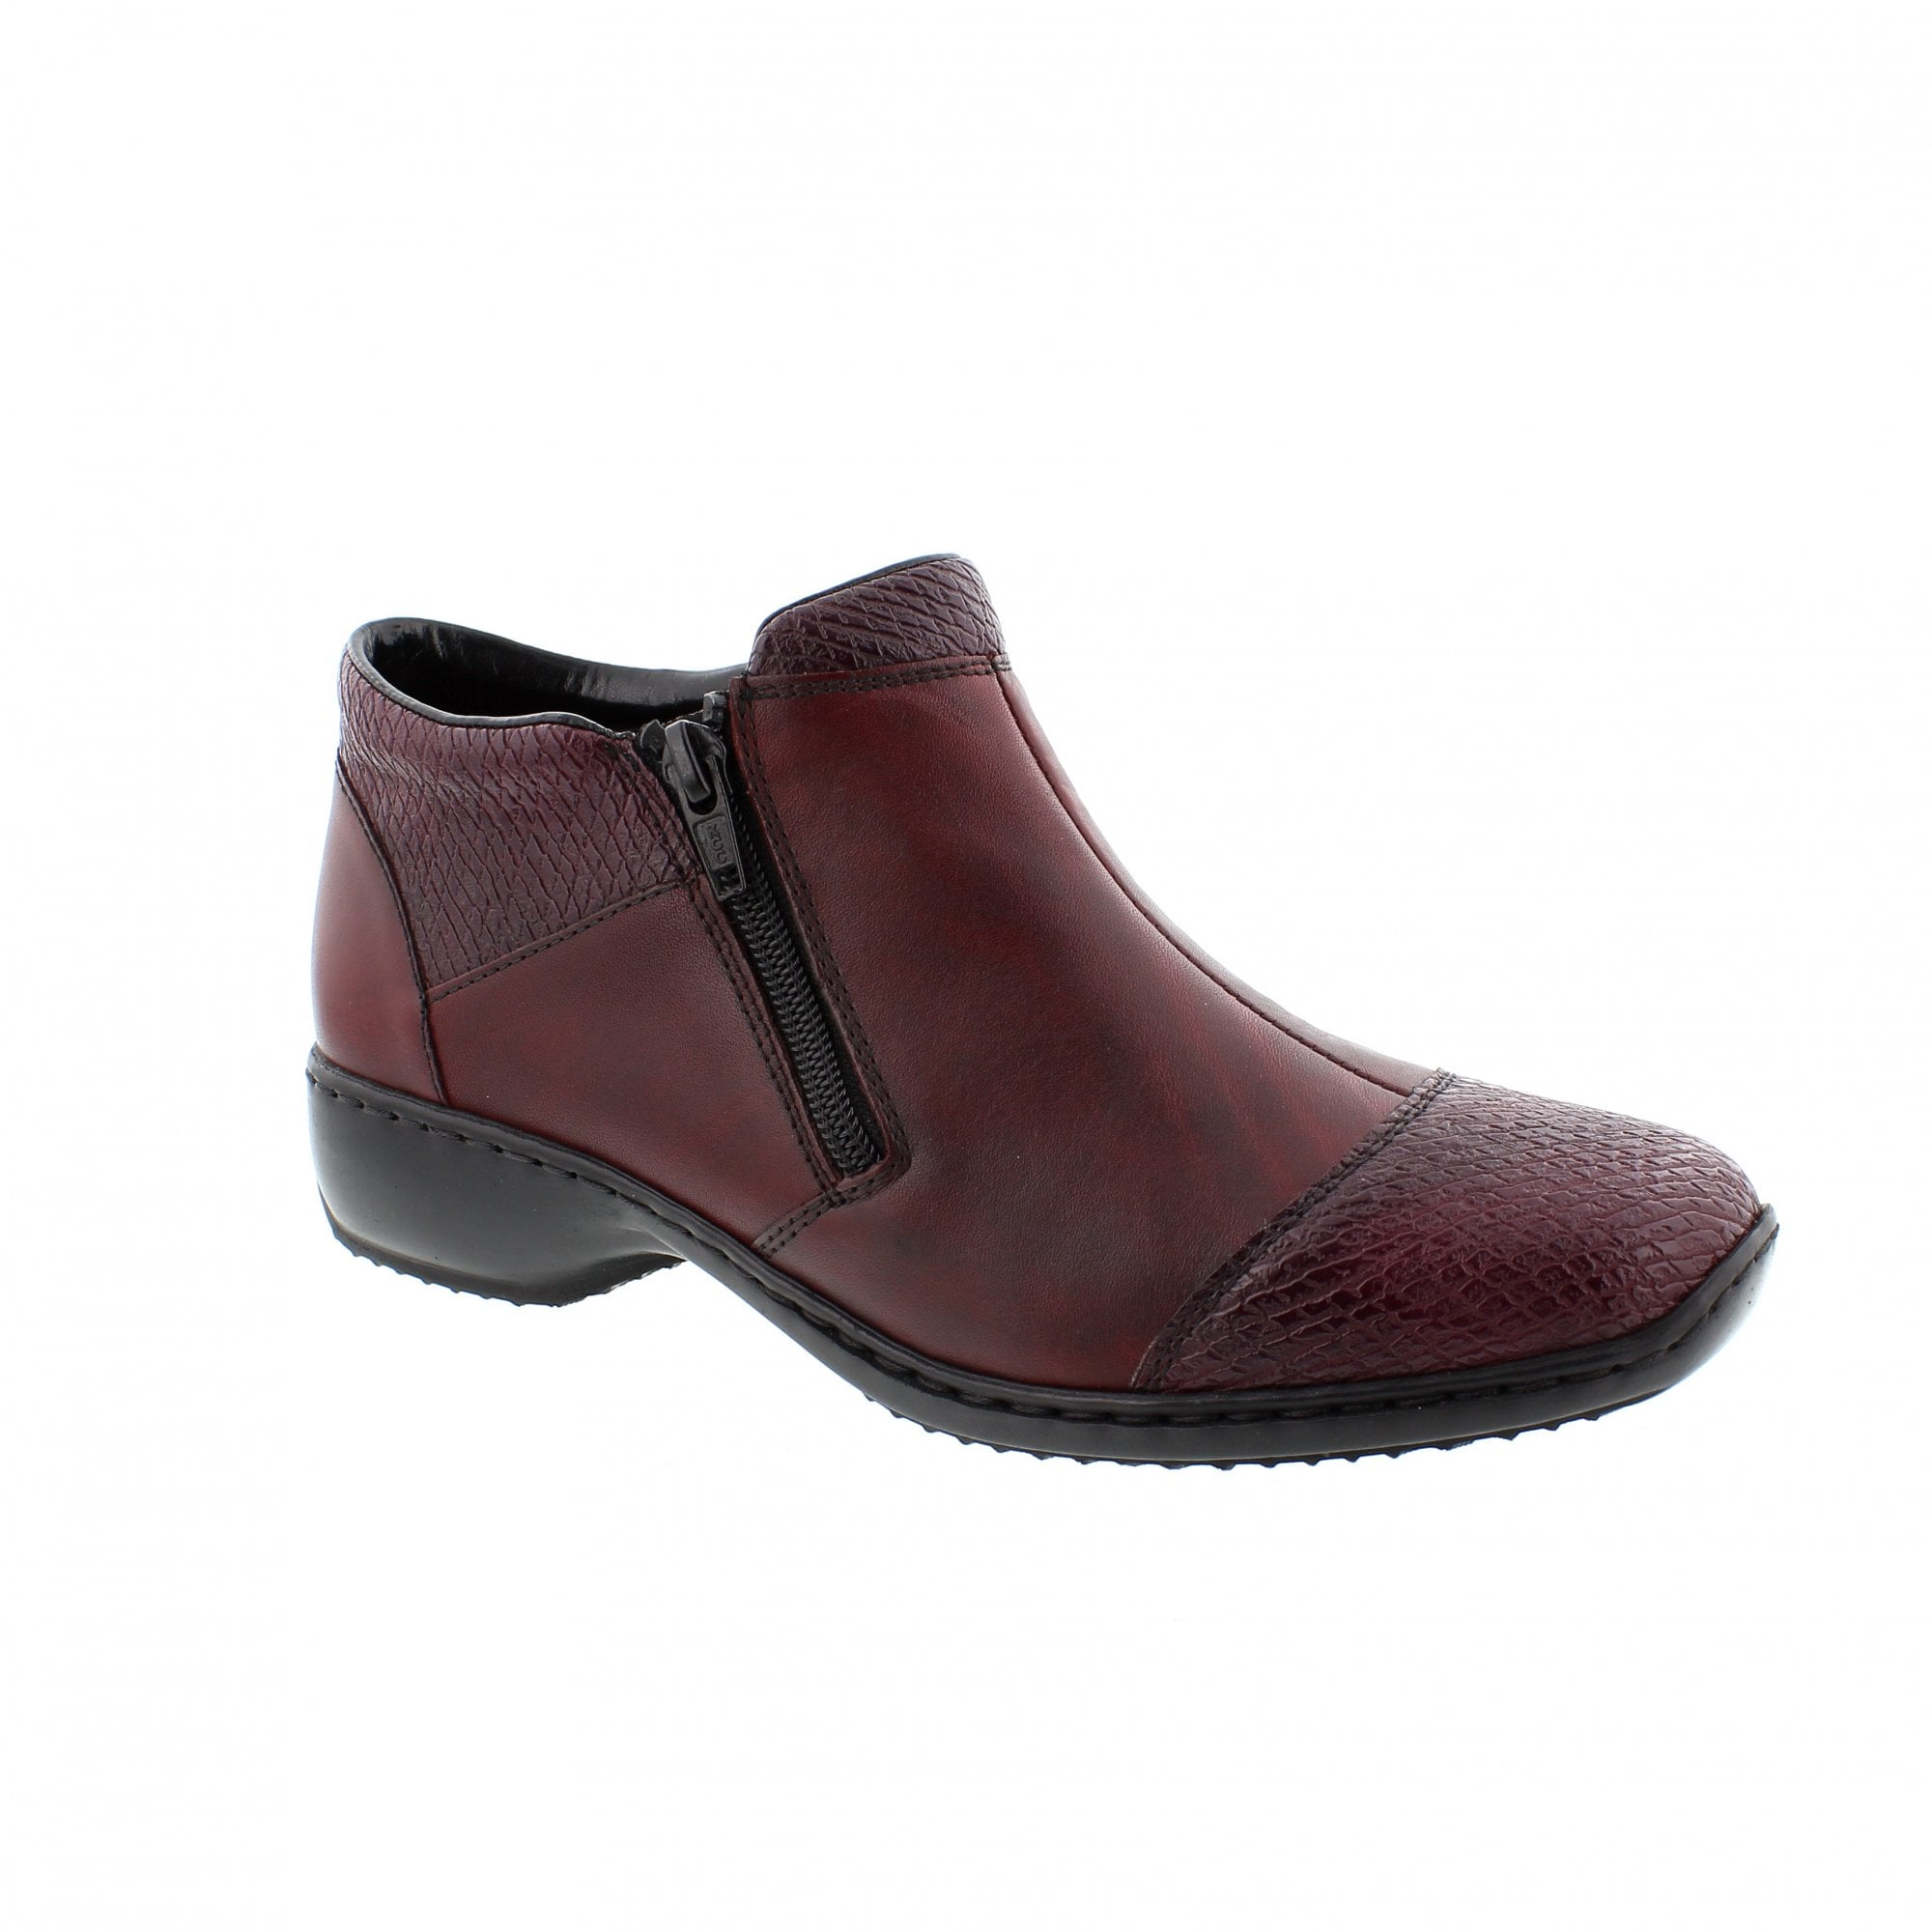 93675b8574e Rieker L3879-35 Burgundy Leather Womens Ankle Boots | Rogerson Shoes